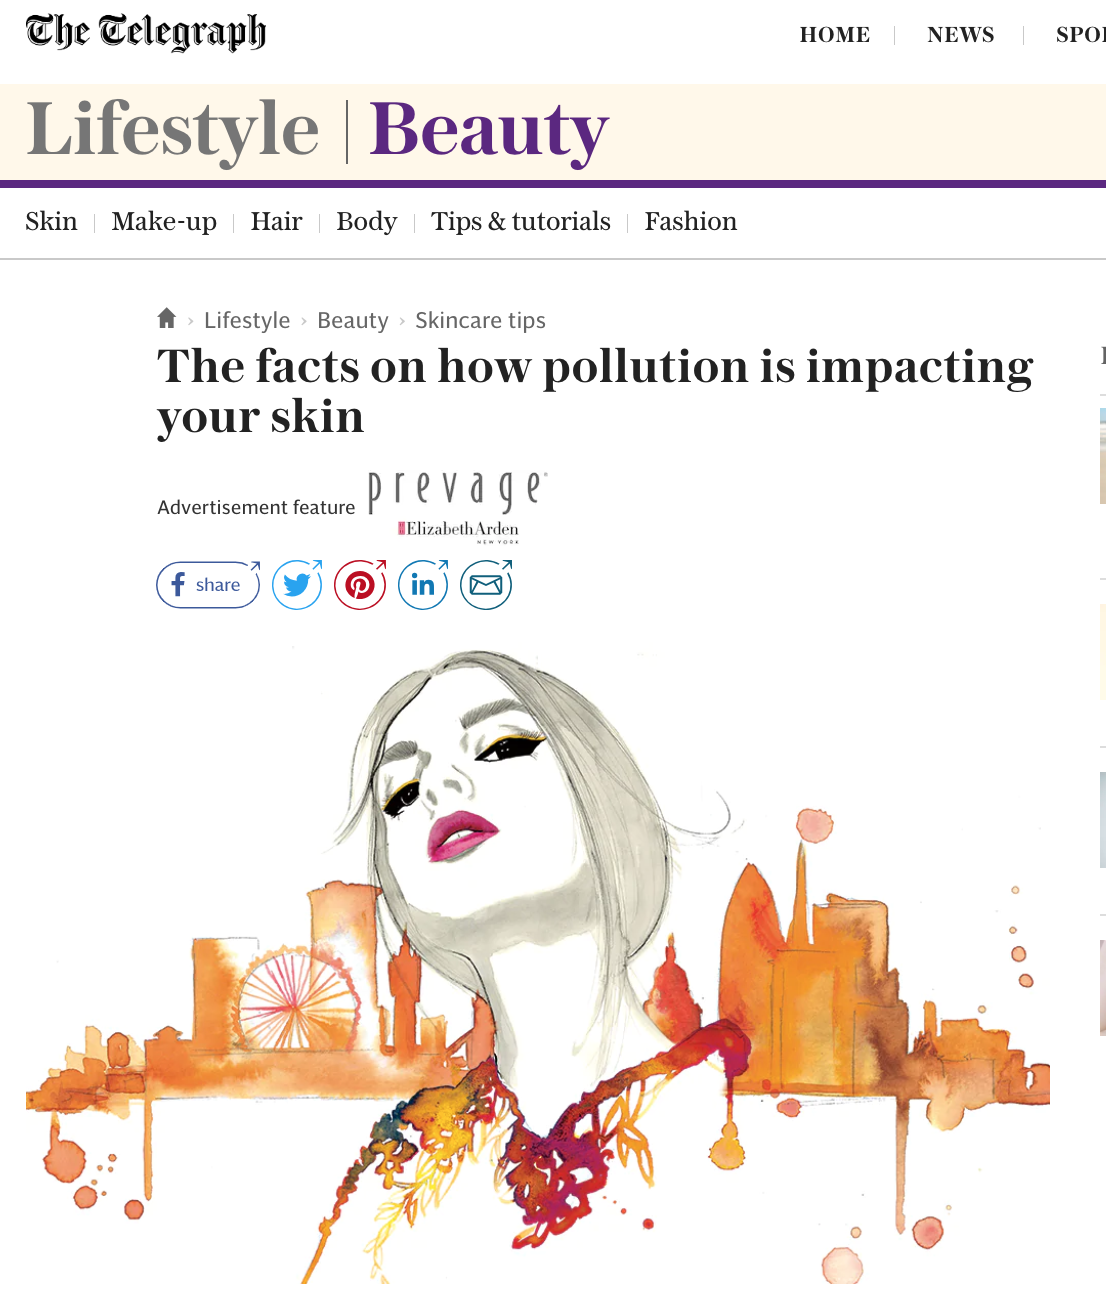 The Effects of Pollution on the Skin